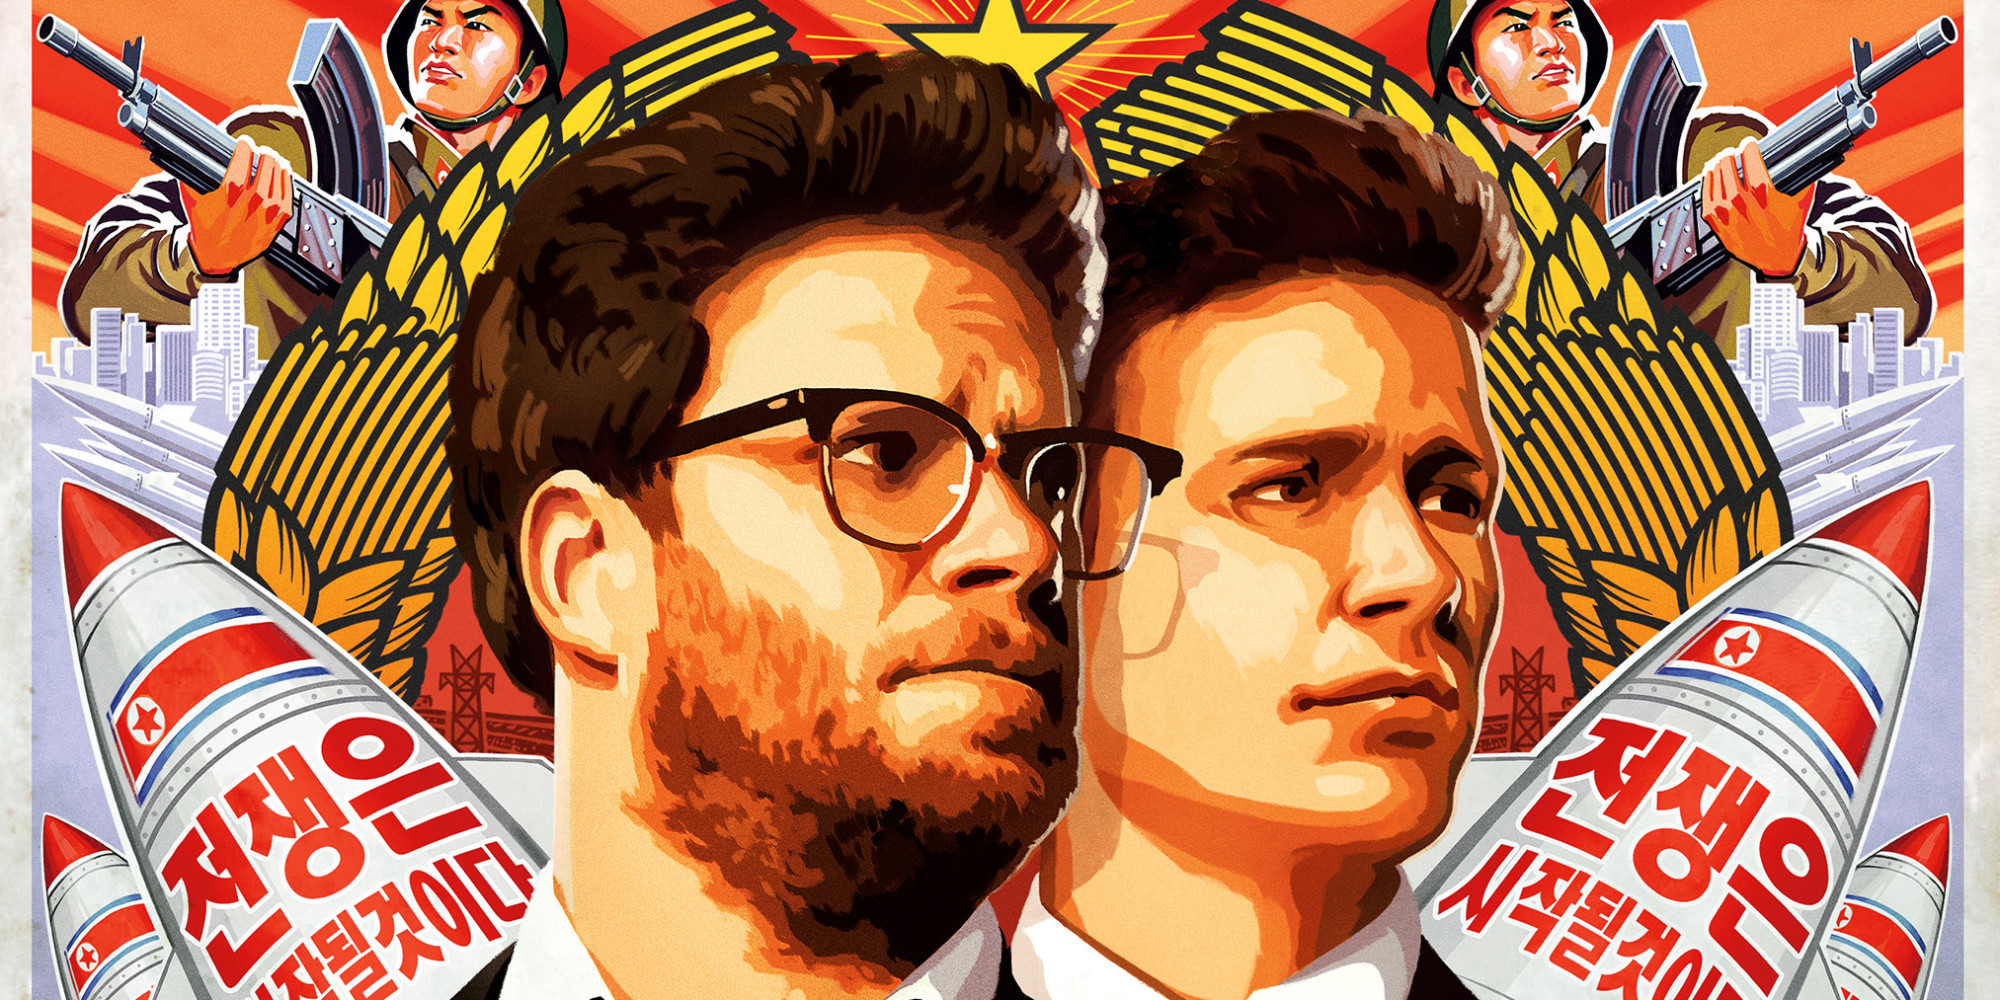 Netflix to Stream 'The Interview' on Jan 24 for No Extra Charge